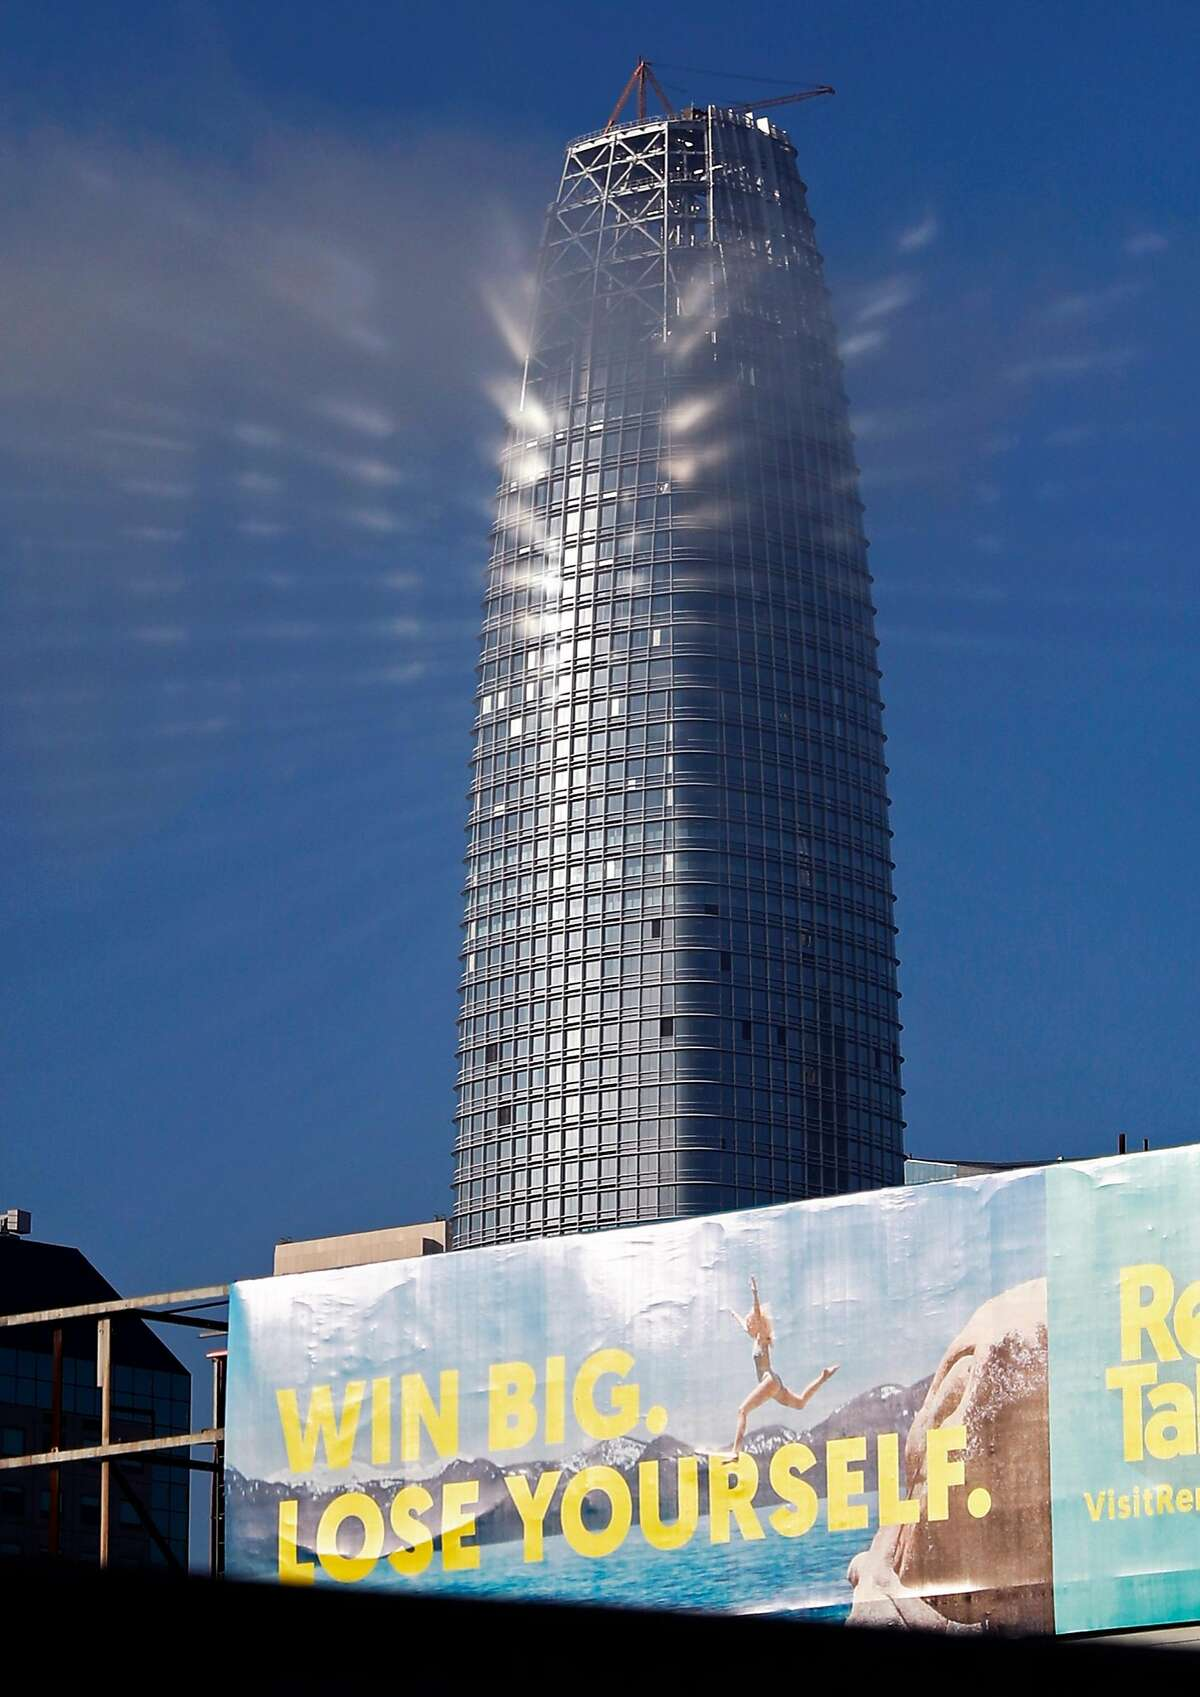 Salesforce Tower in San Francisco, Calif. on Monday, August 28, 2017.